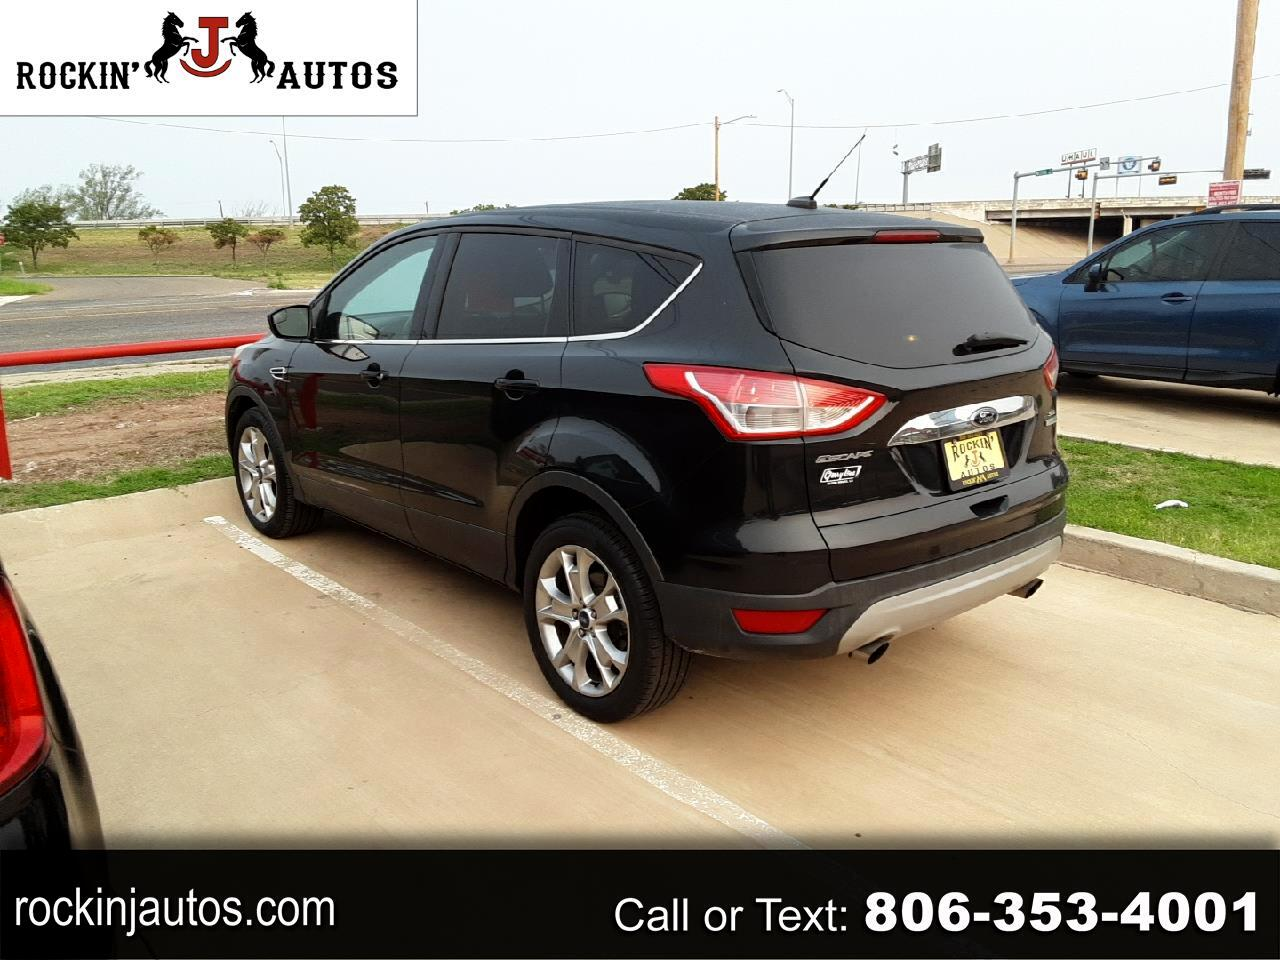 Ford Escape 2WD 4dr I4 Auto XLT 2013